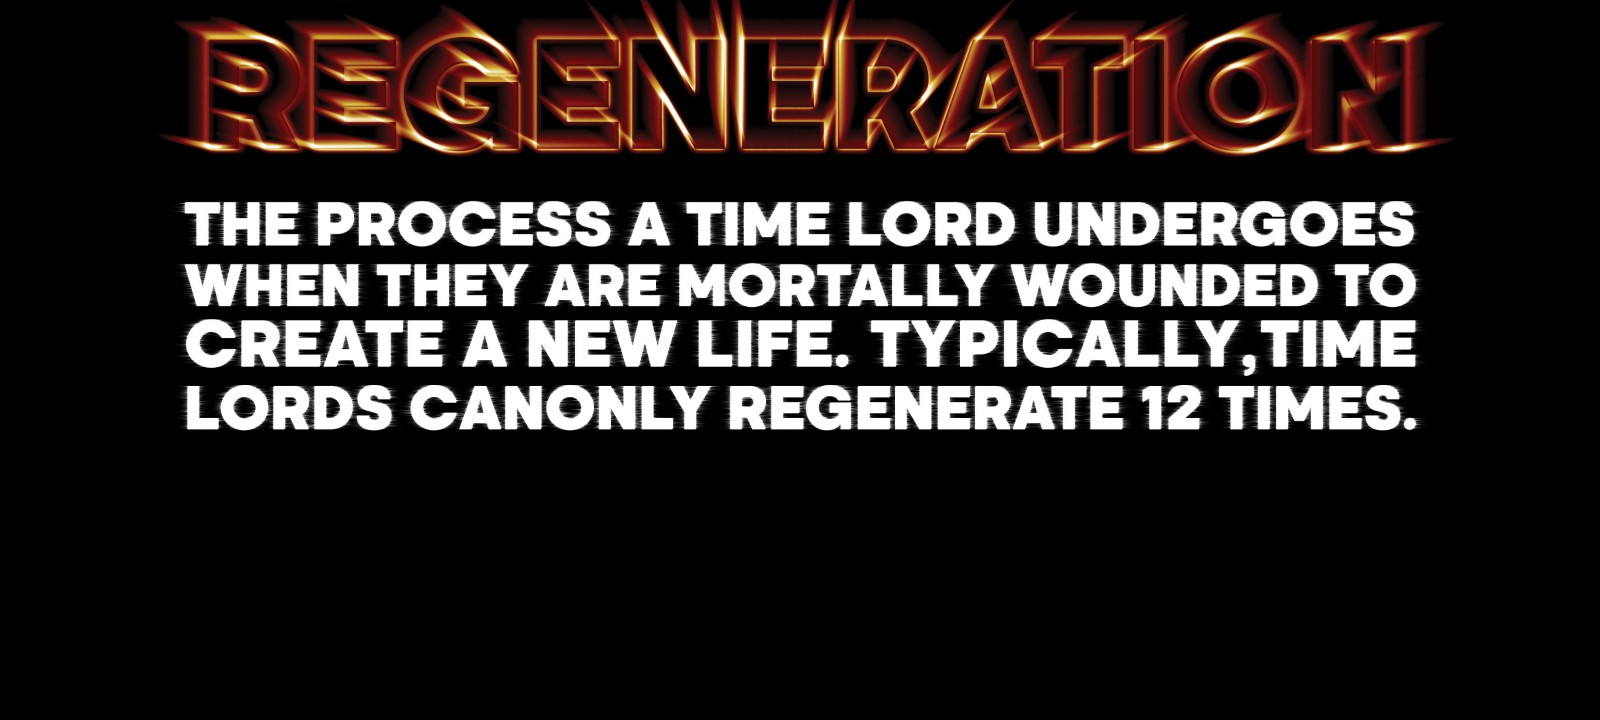 regeneration-infographic-final